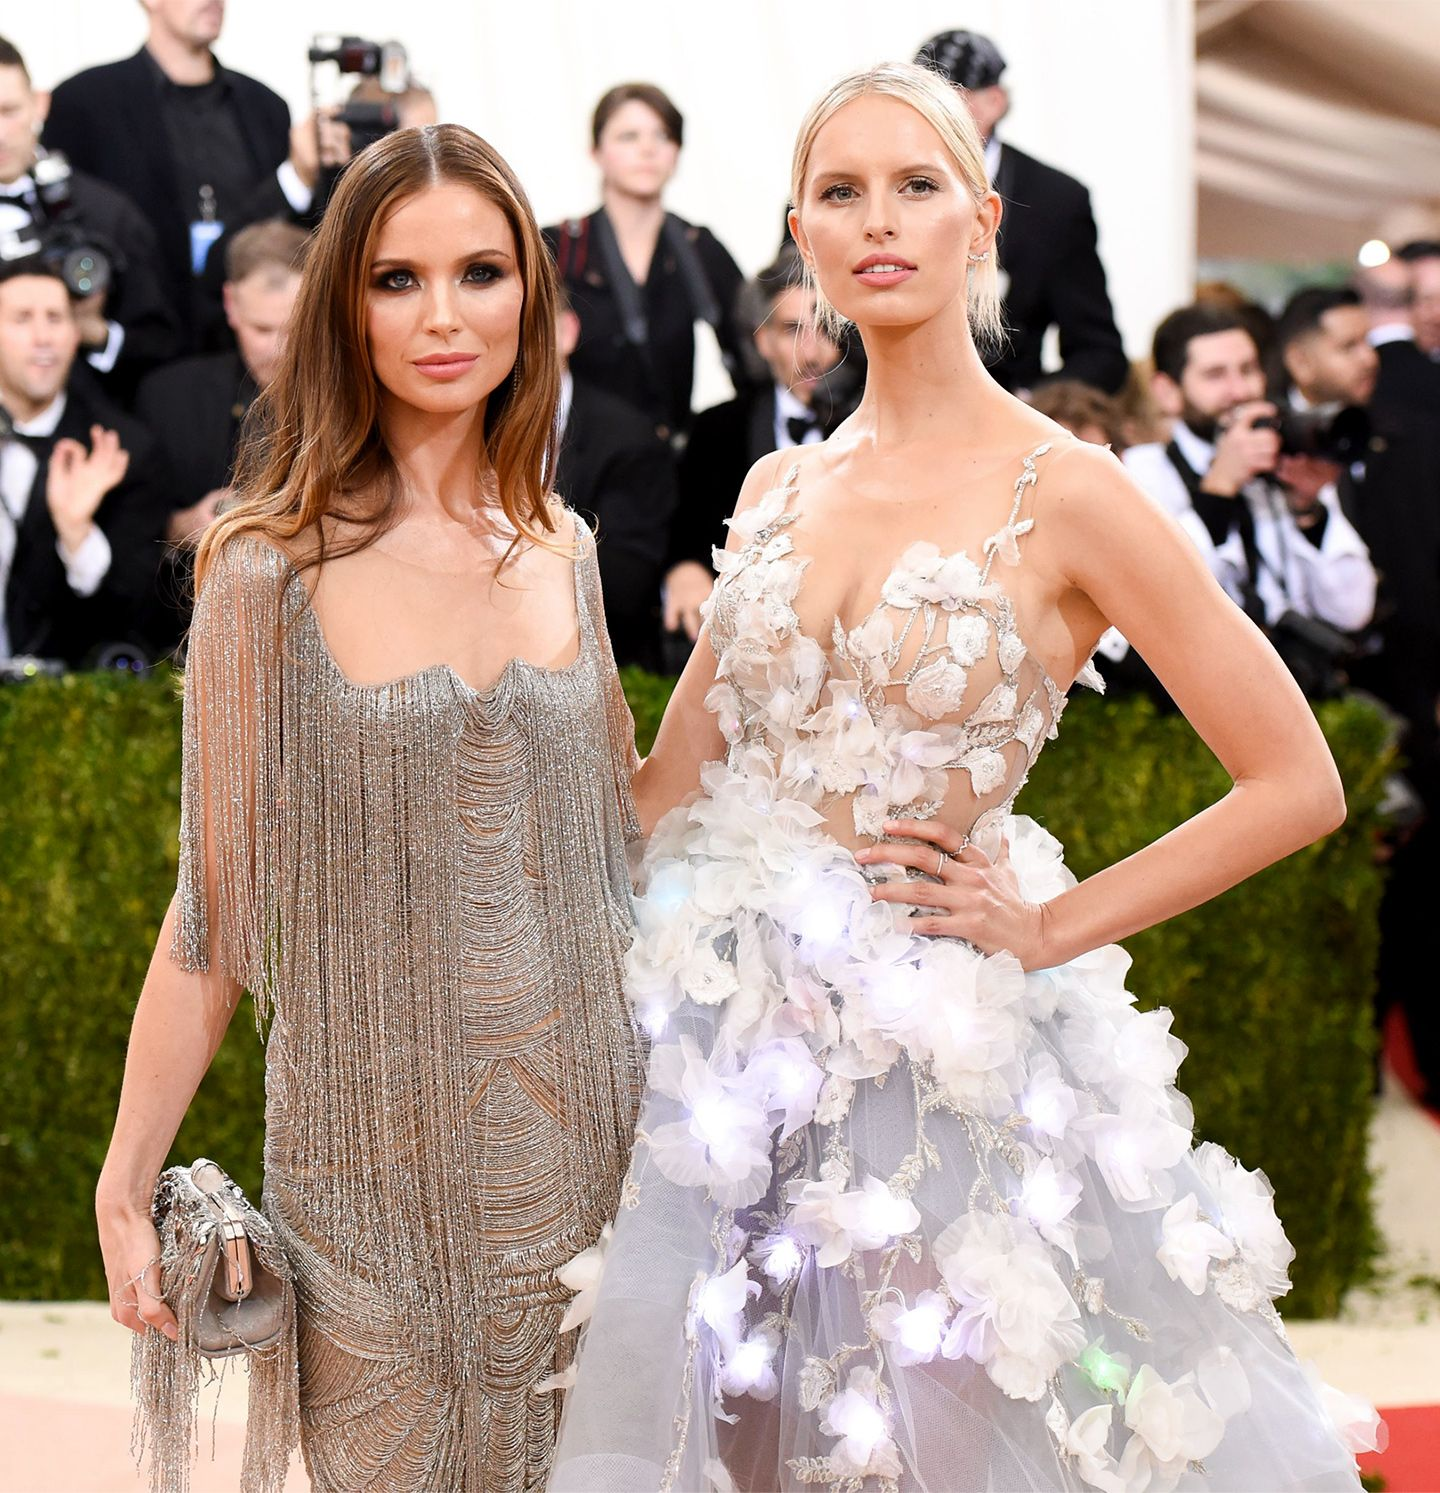 Model Karolina Kurkova posing in the dress next to Georgina Chapman